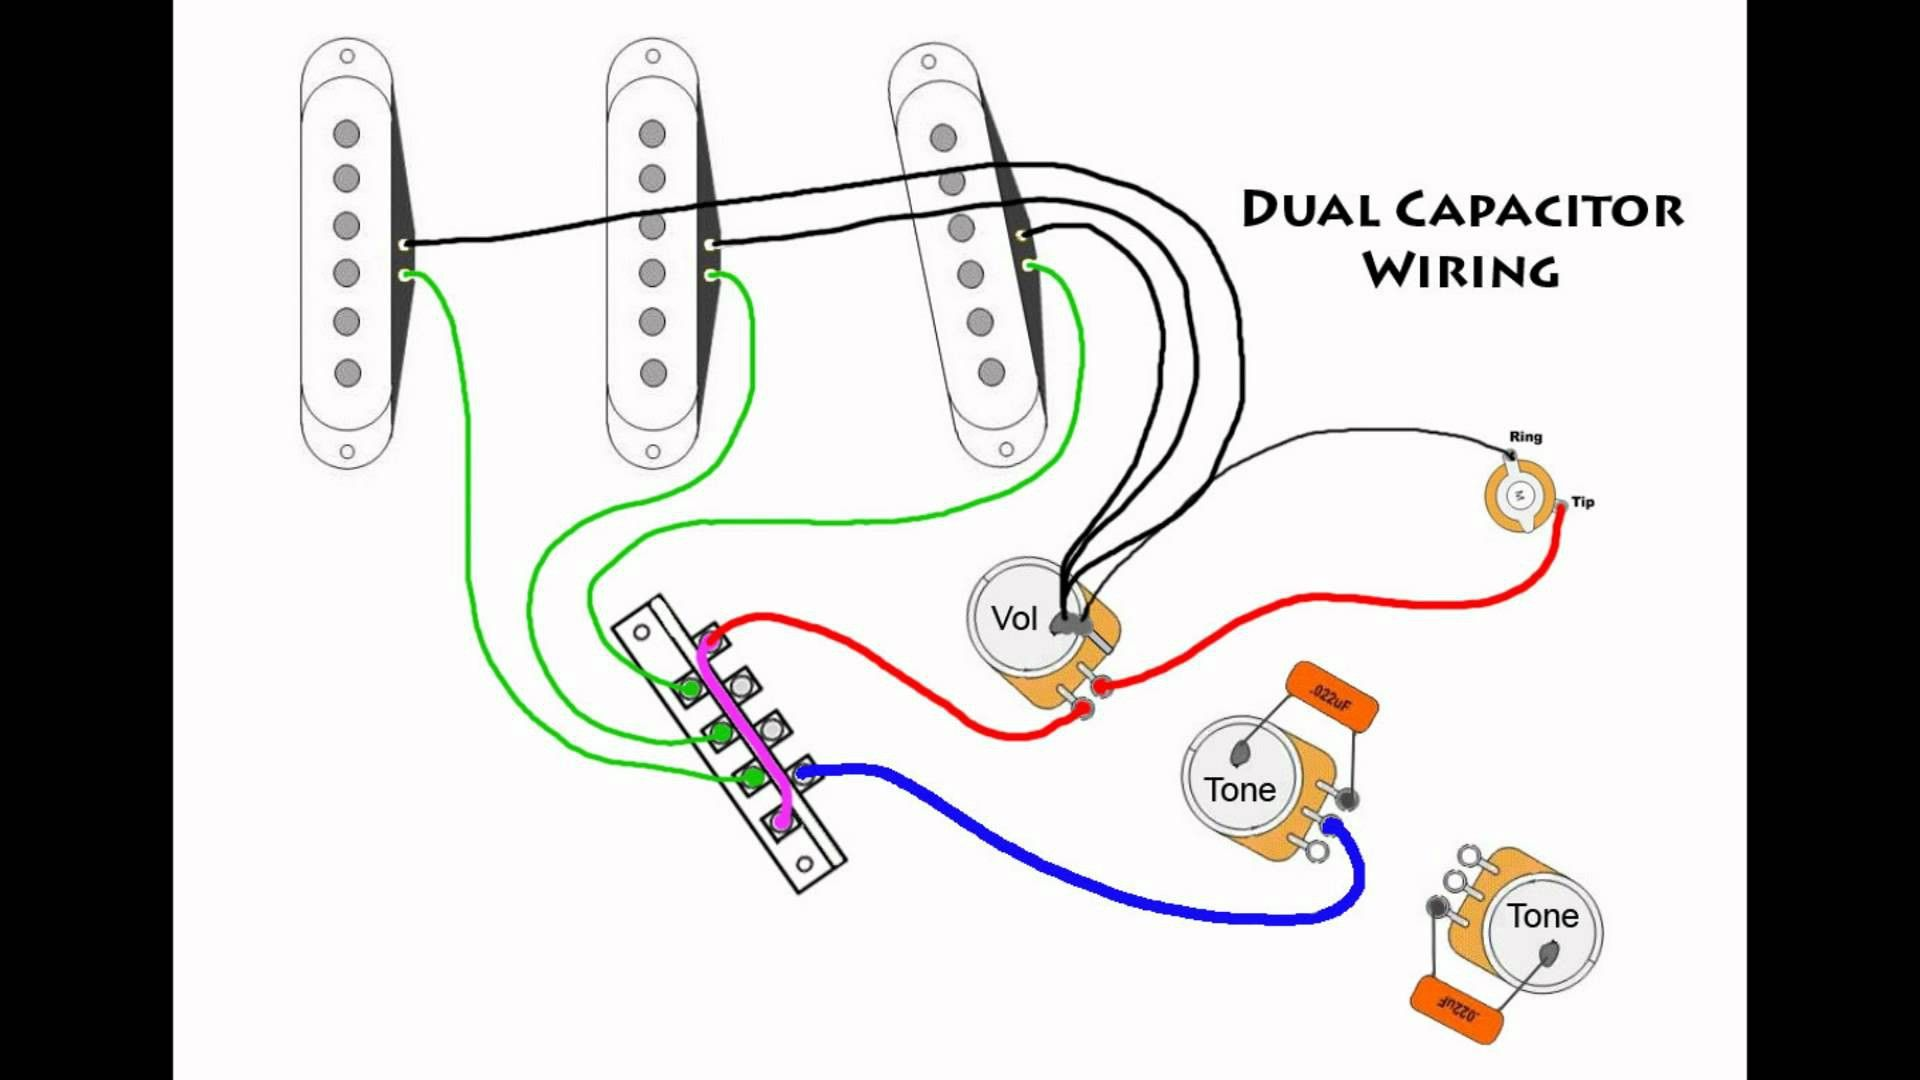 Kia Fog Light Wiring Diagram Get Free Image About Wiring Diagram